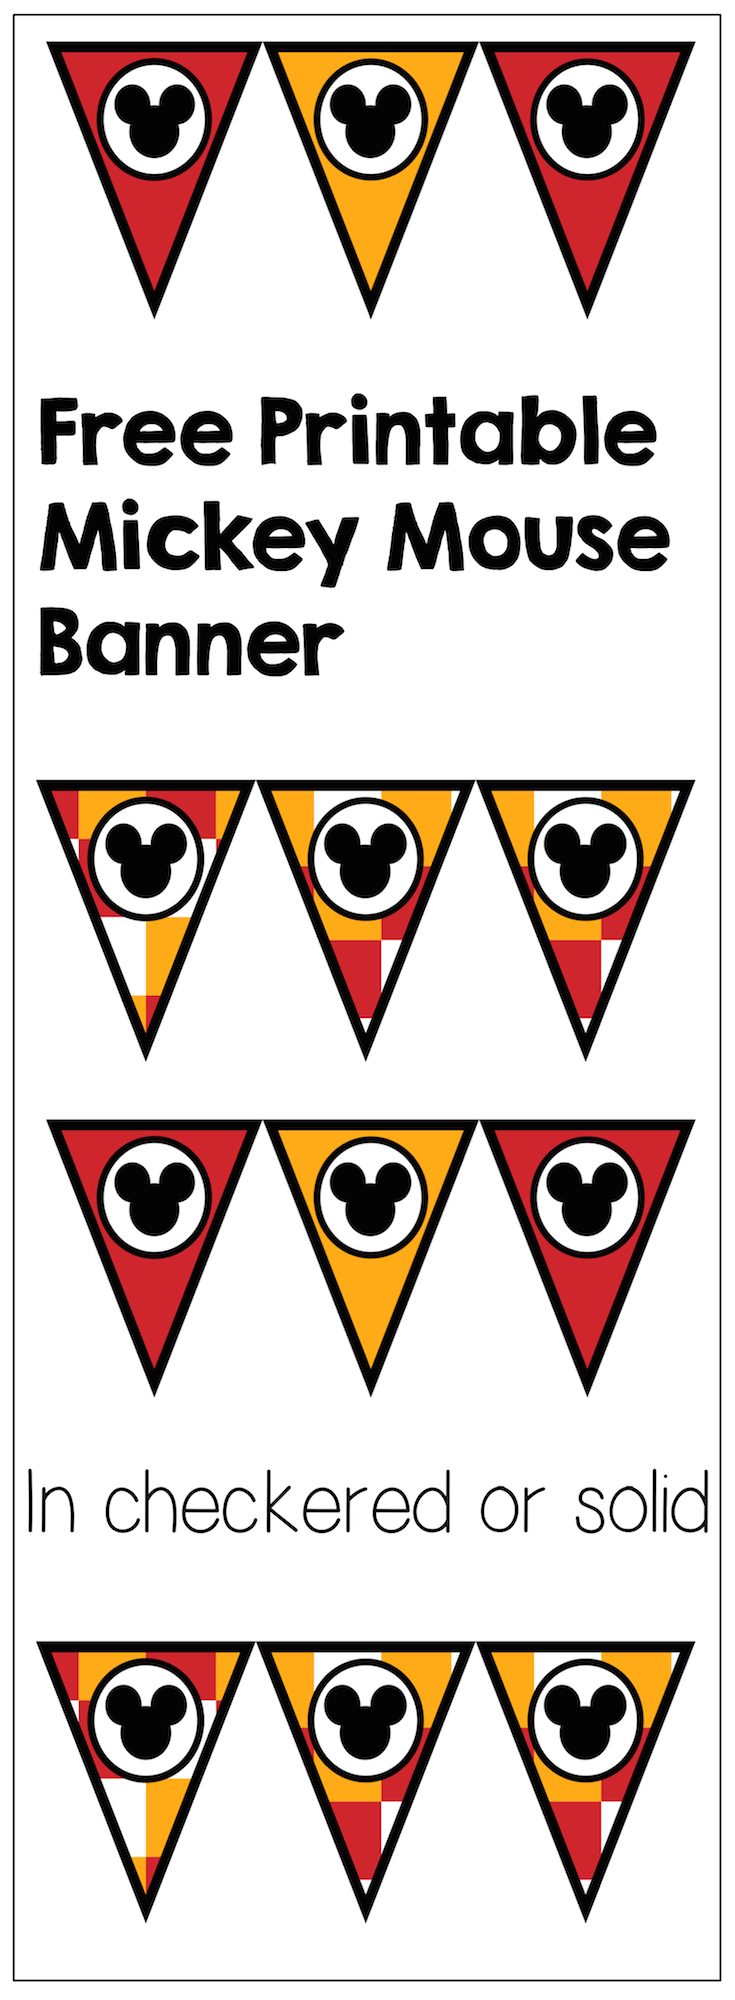 Mickey Mouse Banner Free Printable | Paper Trail Design